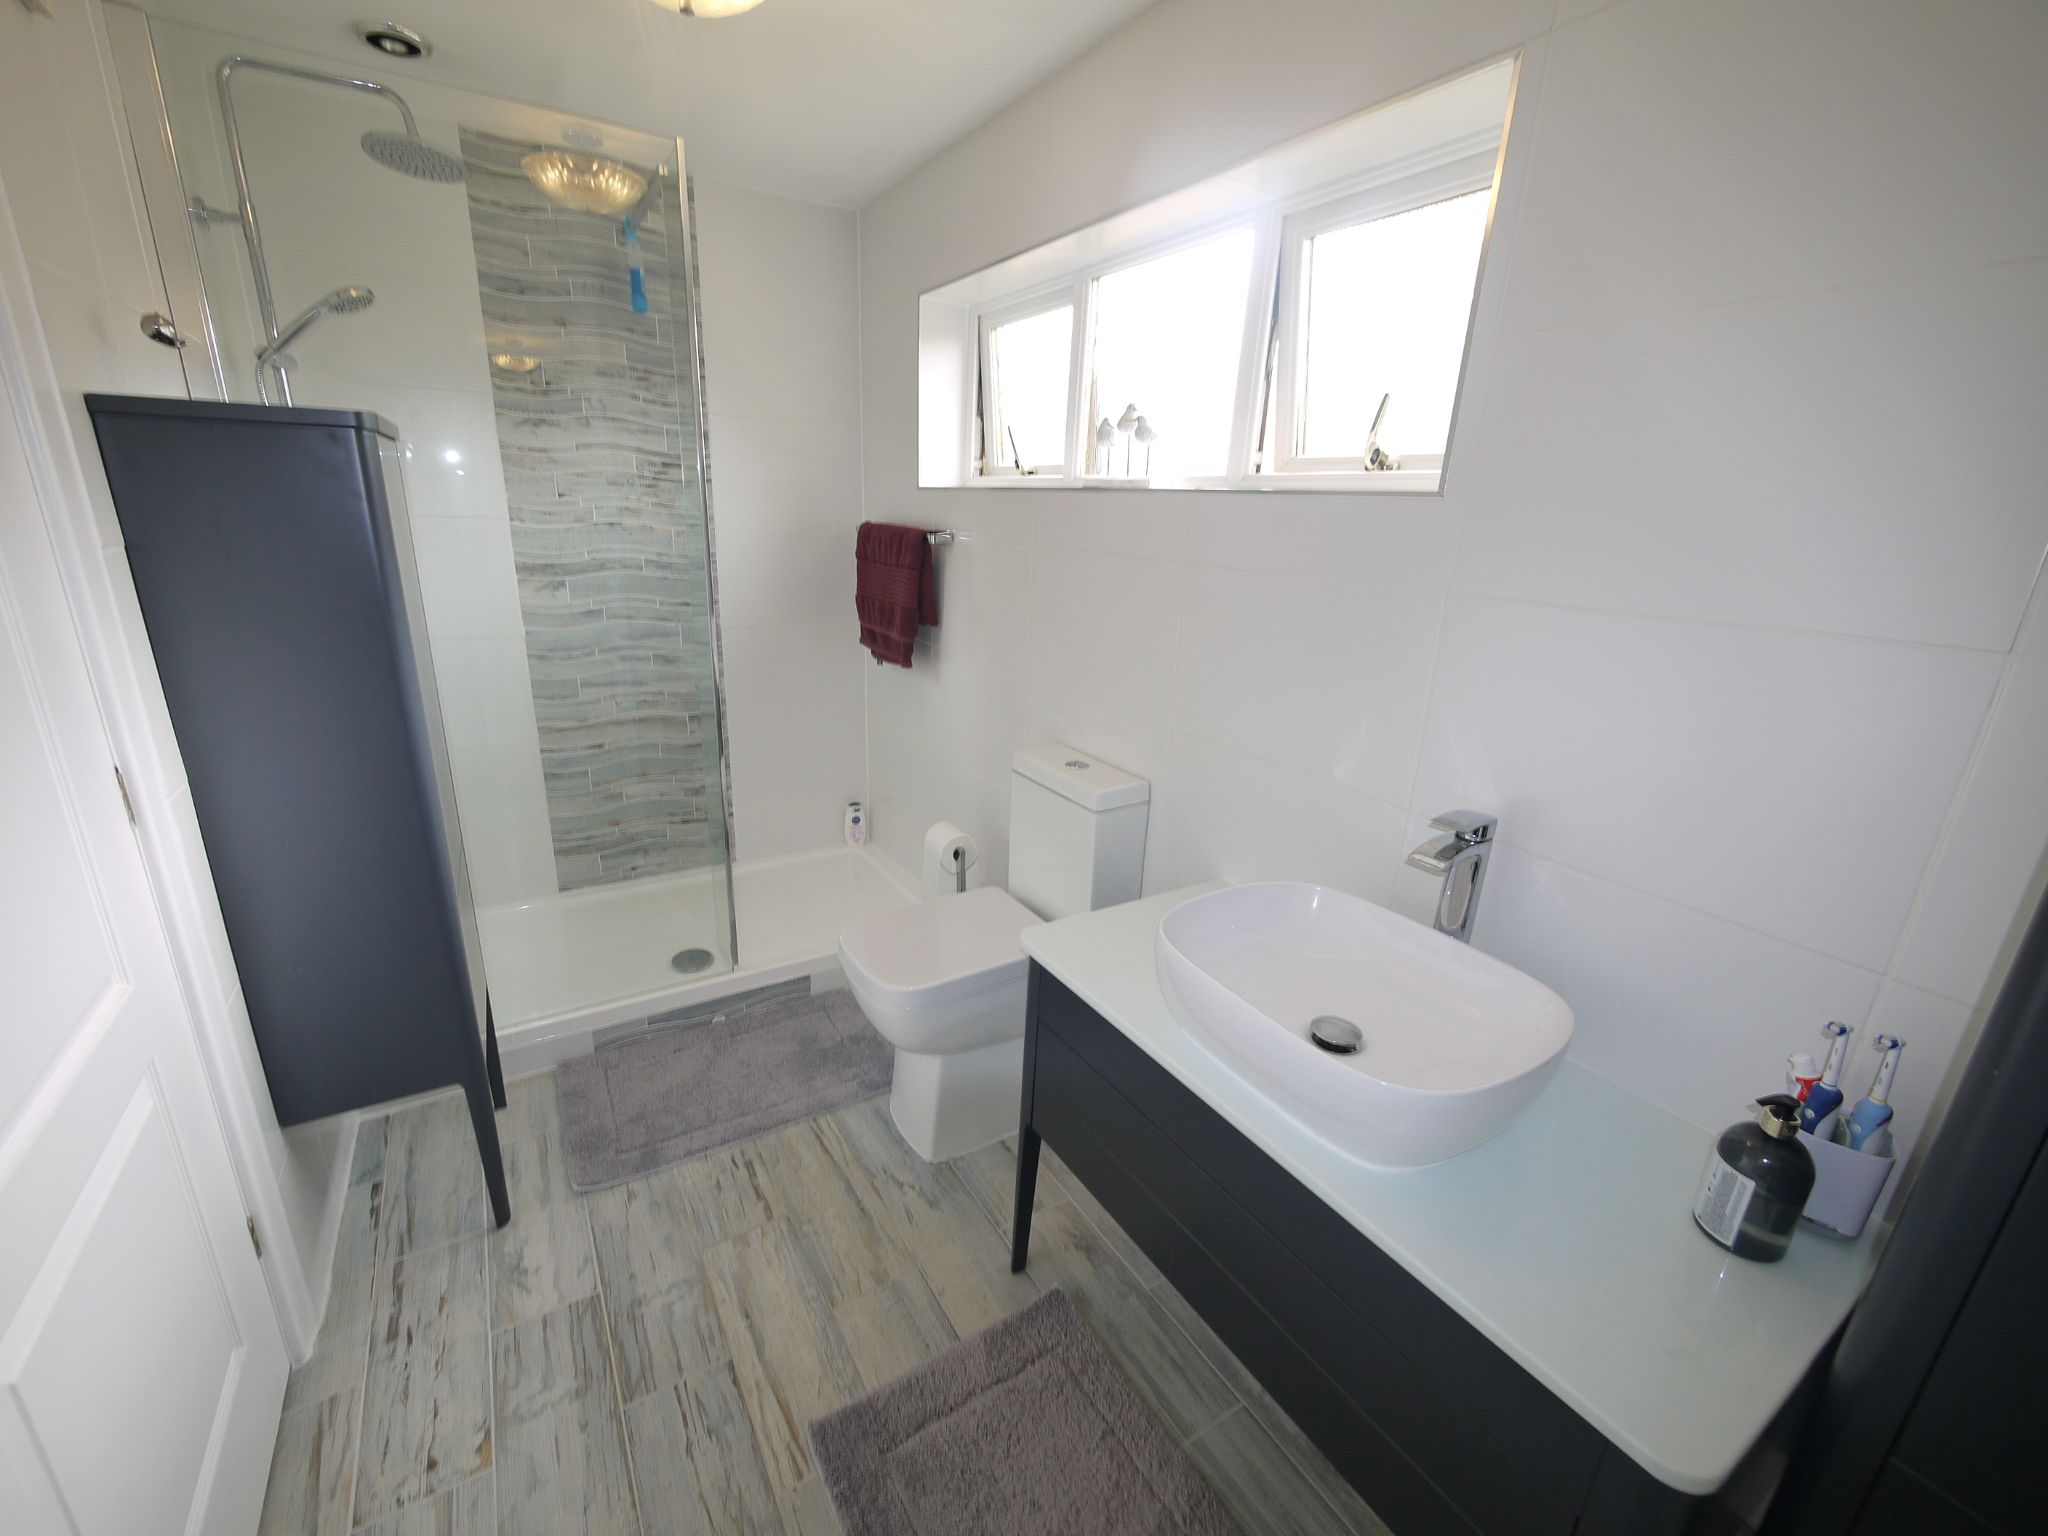 4 bedroom detached house For Sale in Brighouse - Ensuite shower room.